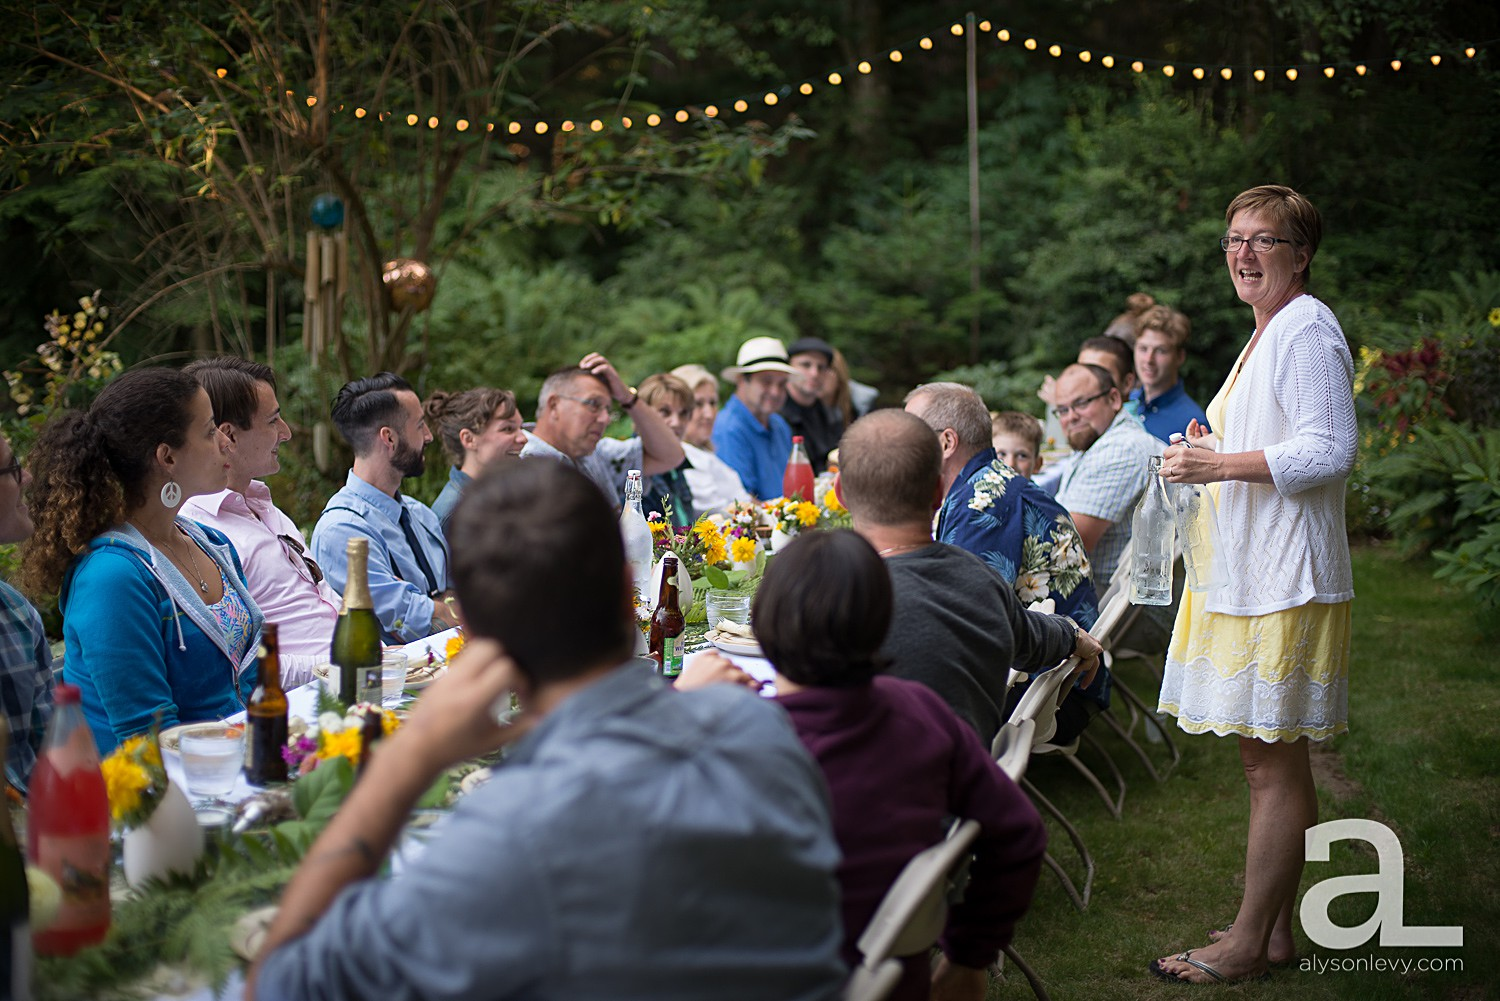 Backyard-Rehearsal-Dinner-Photography_0014.jpg